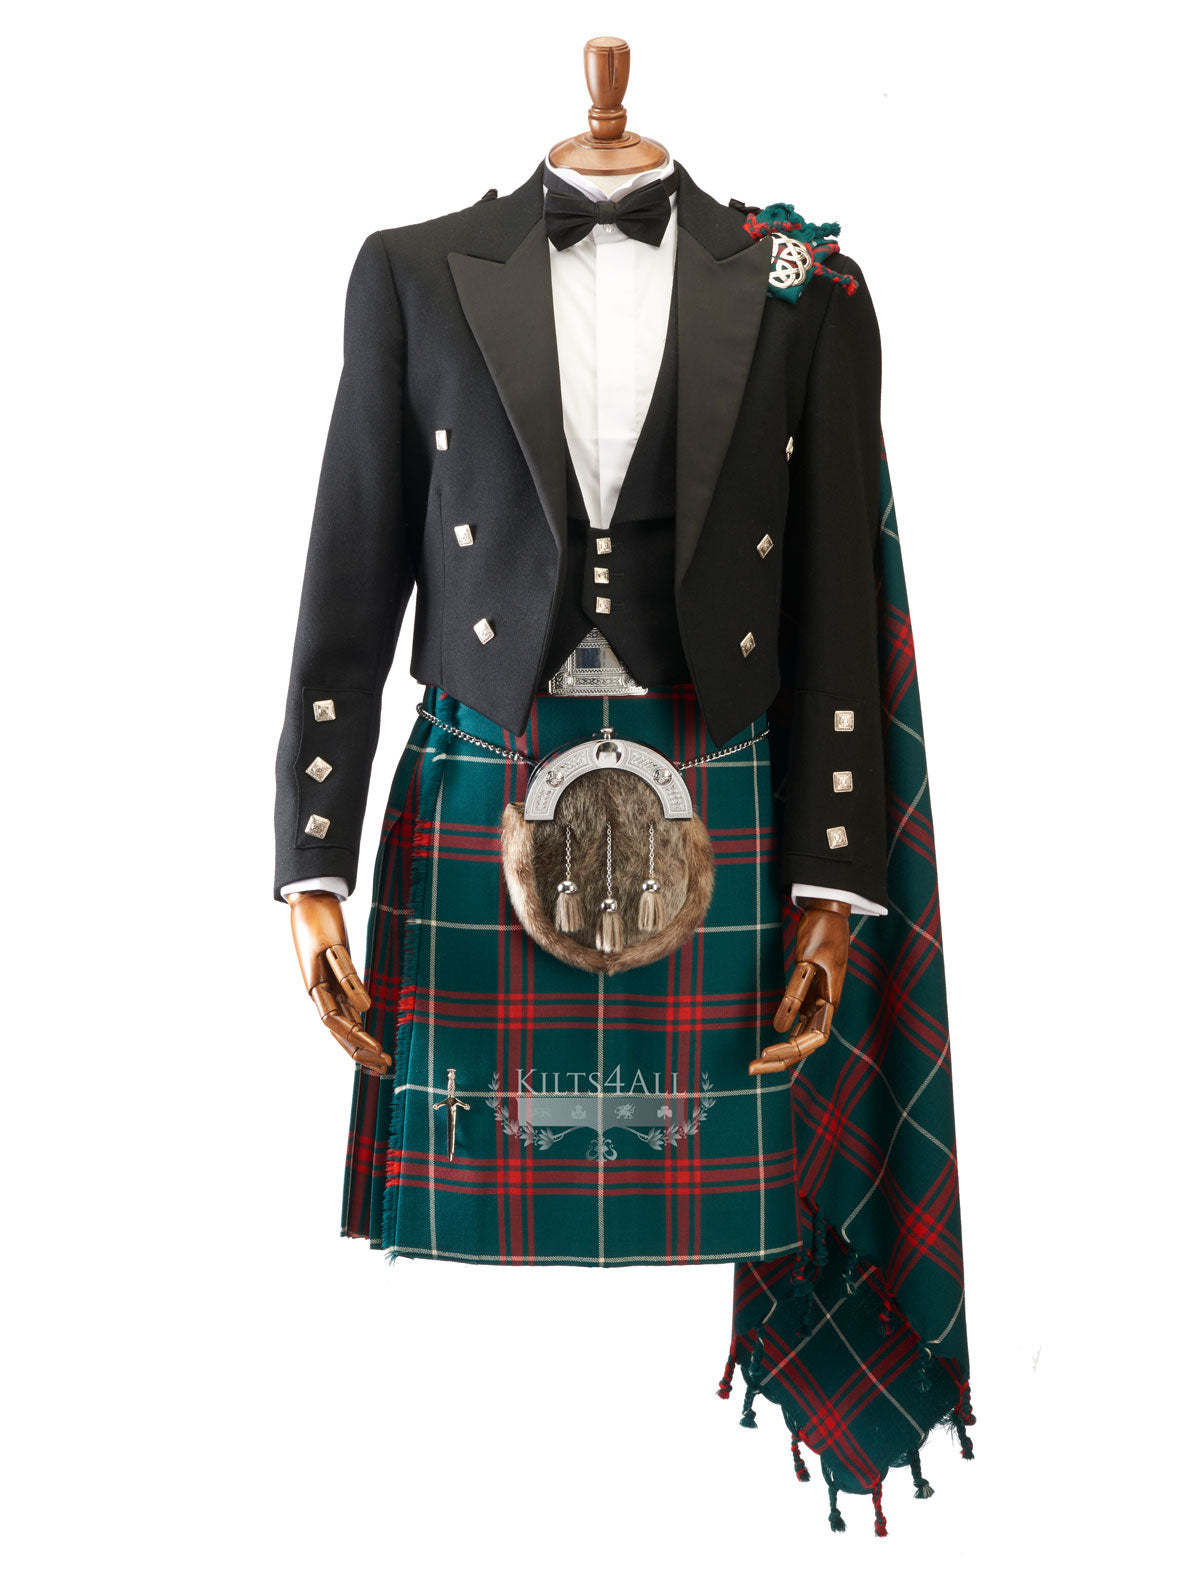 Mens Scottish Tartan Kilt Outfit to Hire - Muted Black Argyll Jacket & Waistcoat